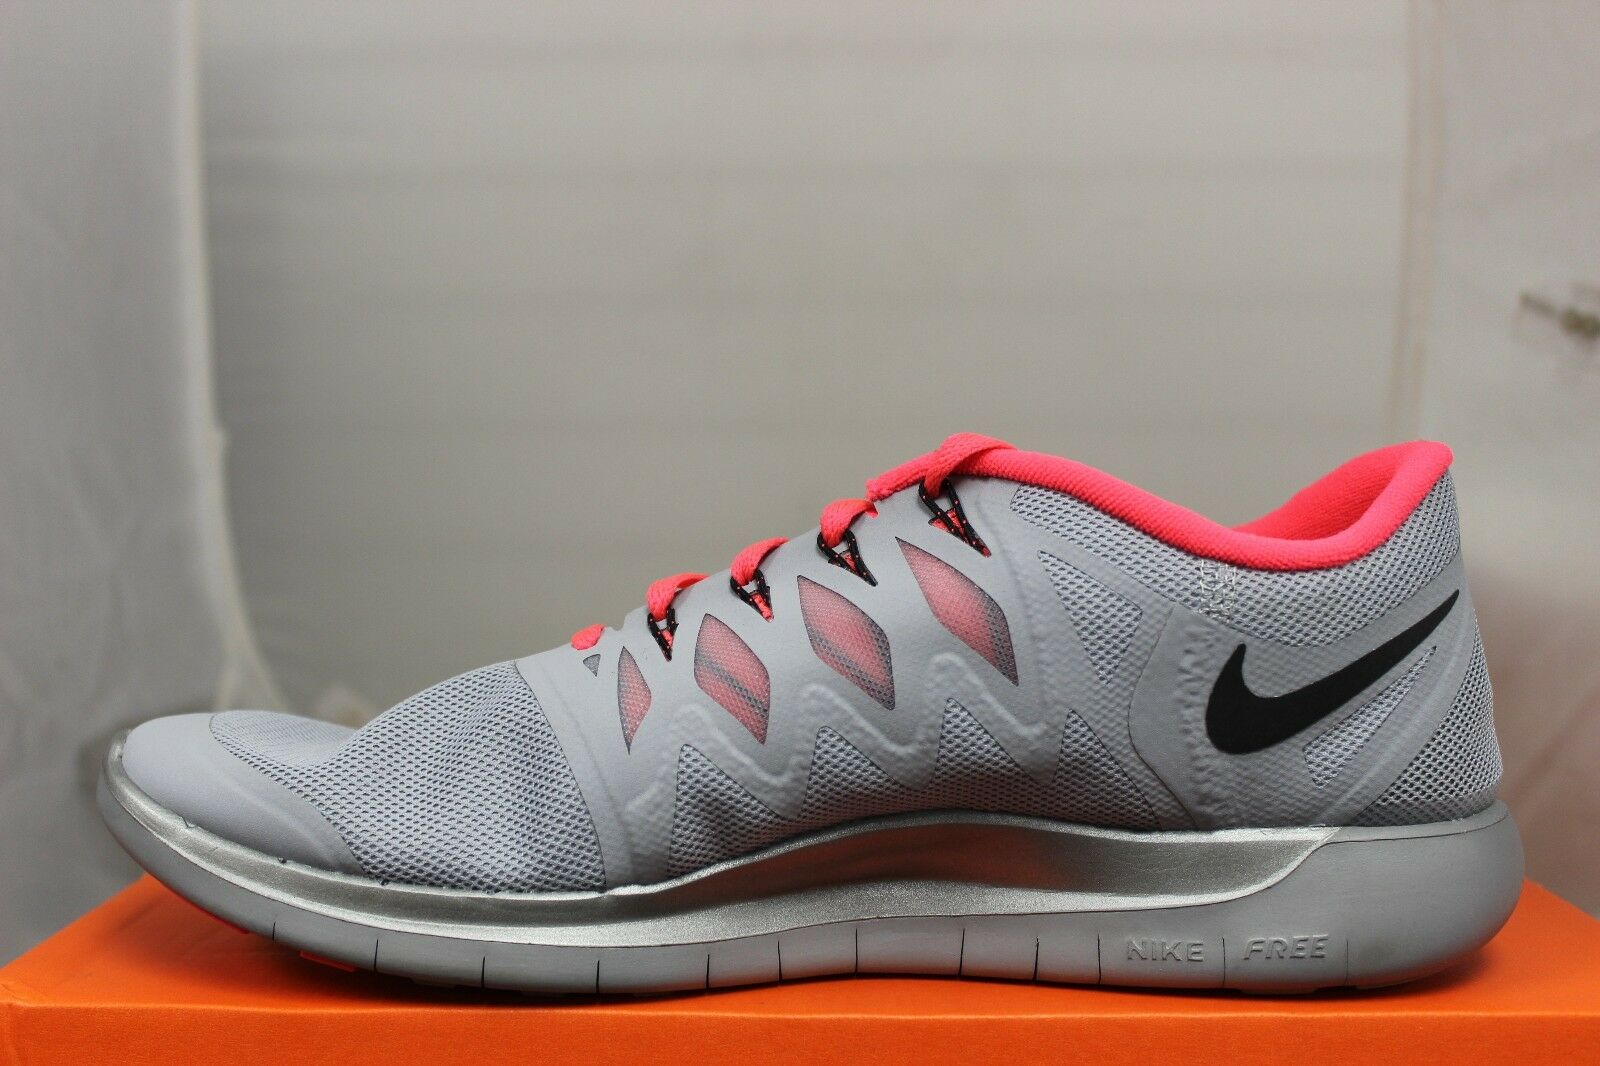 Donna Nike Argento Free 5.0 Flash Riflesso Argento Nike e Nero Hyper Punch 685169006 Nuovo b3a3d7